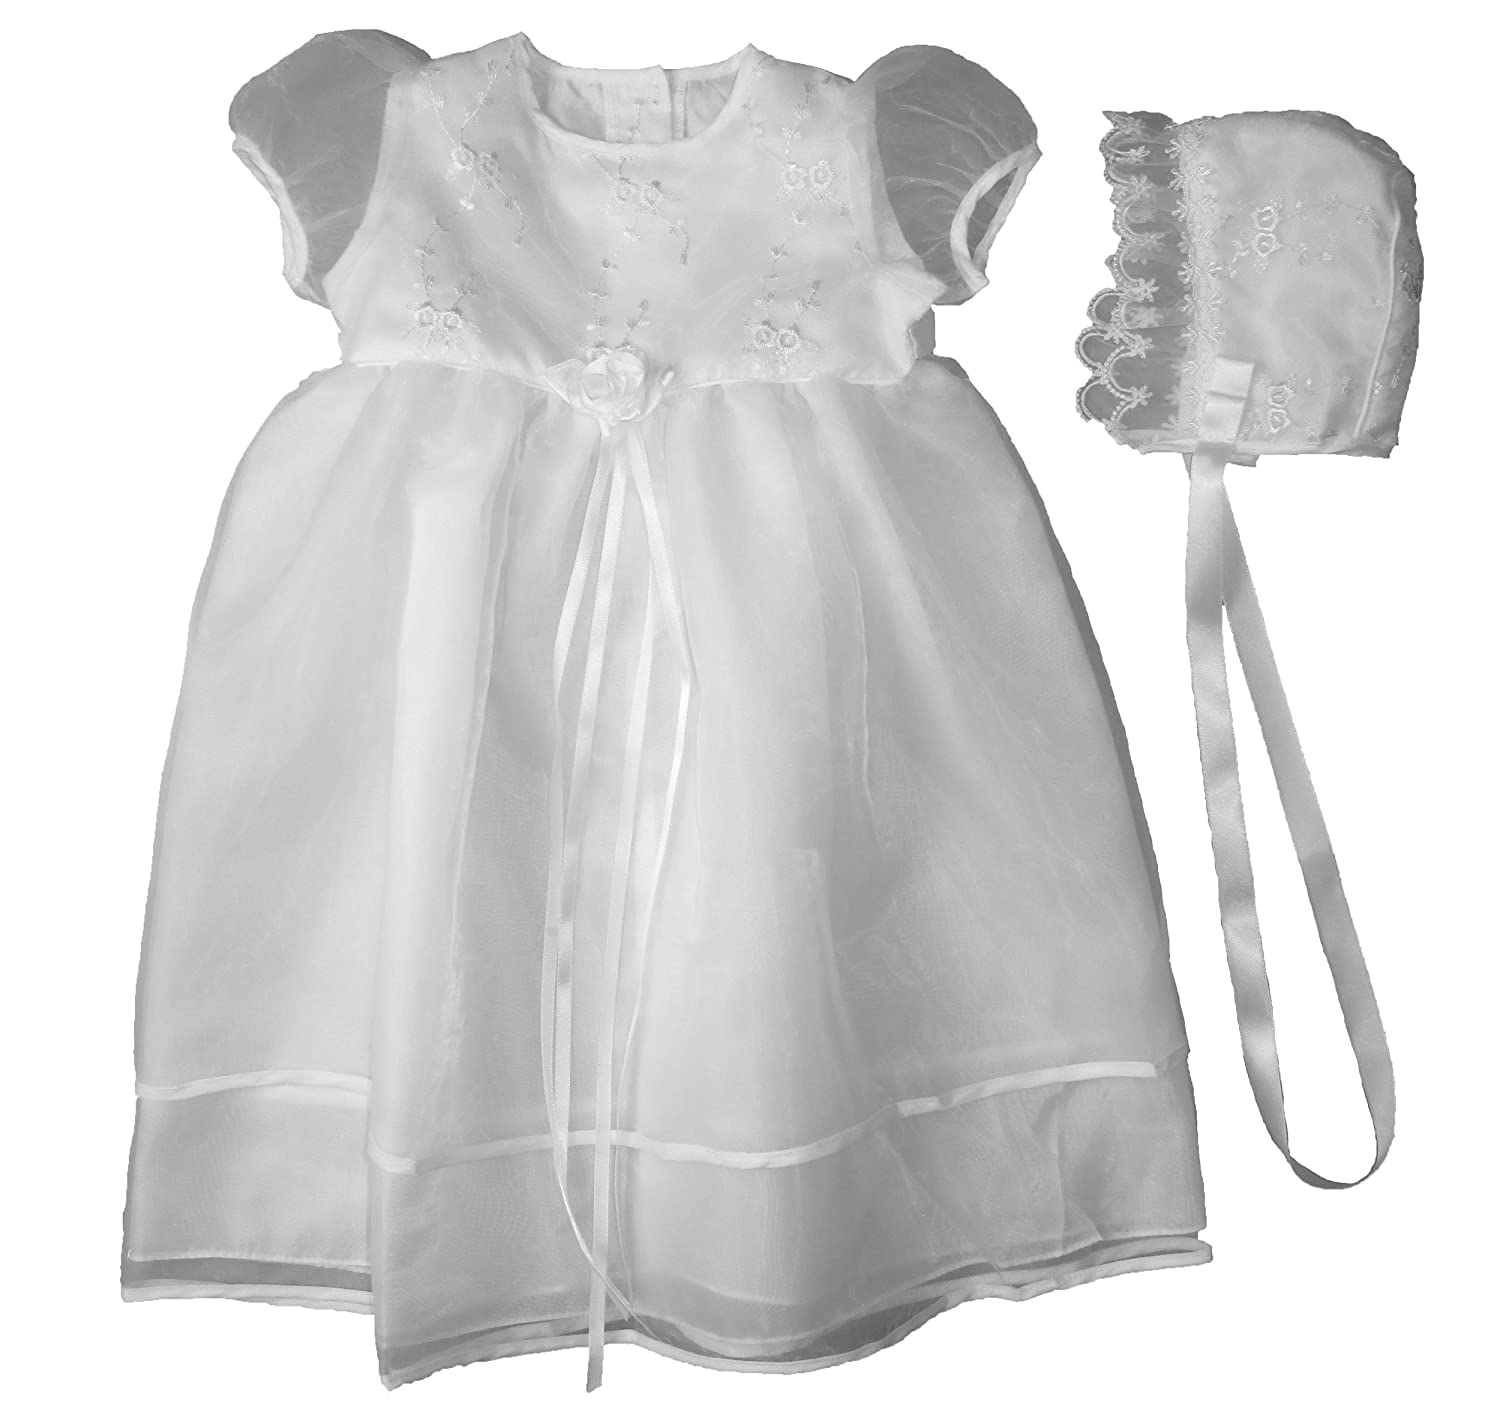 Christening Day White Sheer Organza Christening Gown with Embroidered Bodice c014